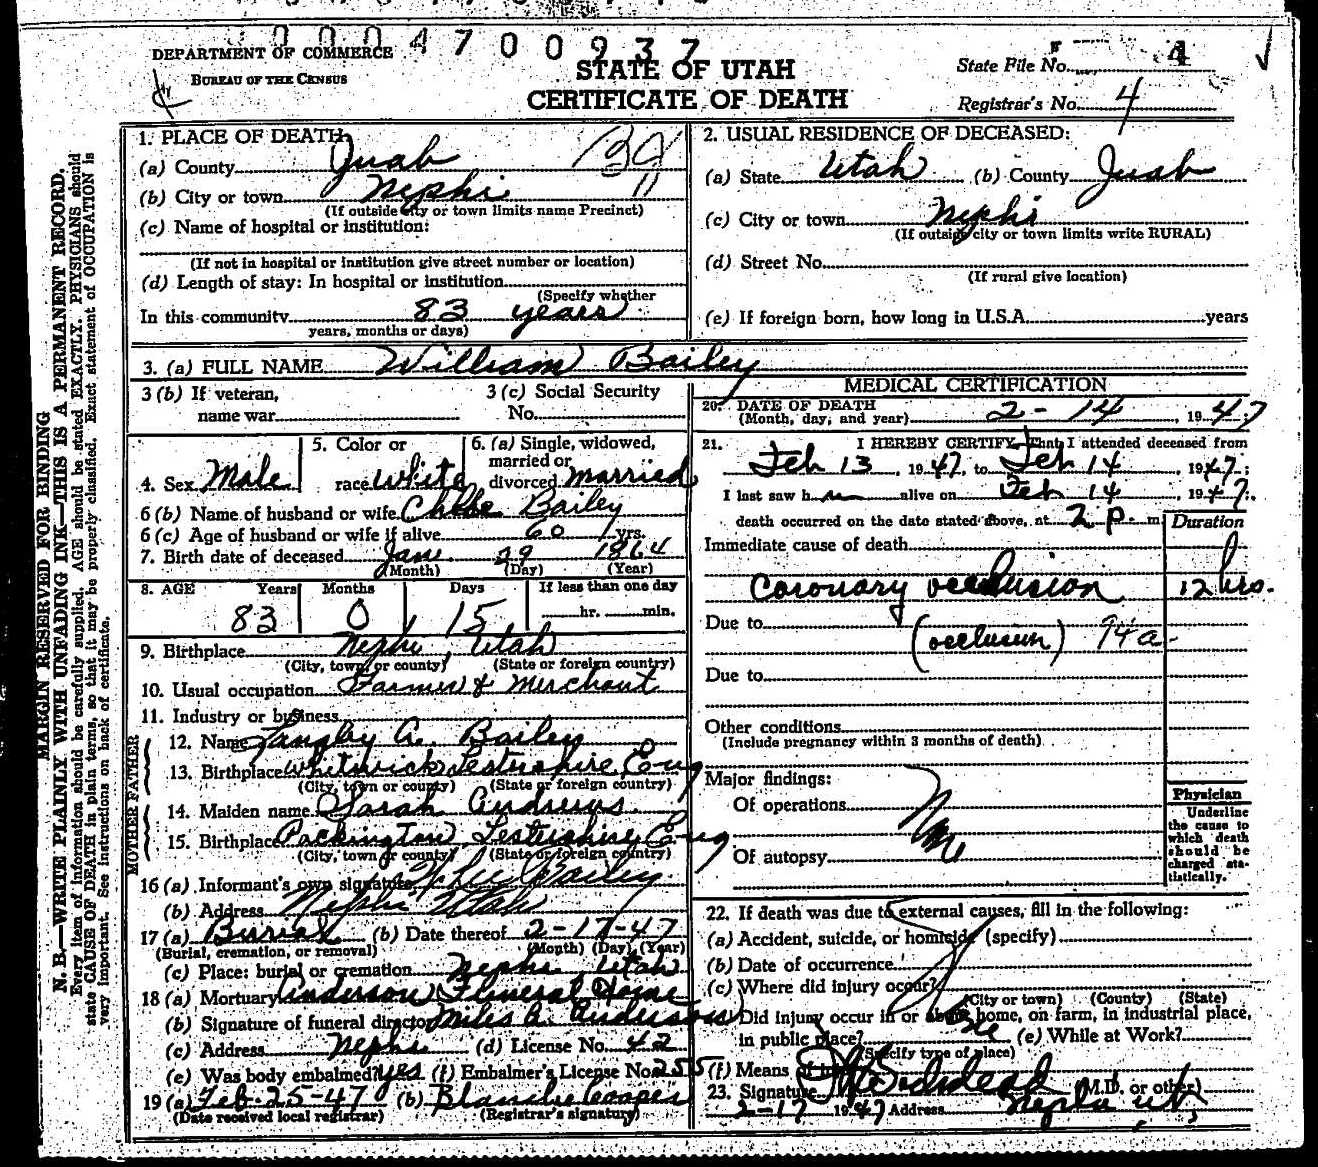 William Bailey Death Certificate